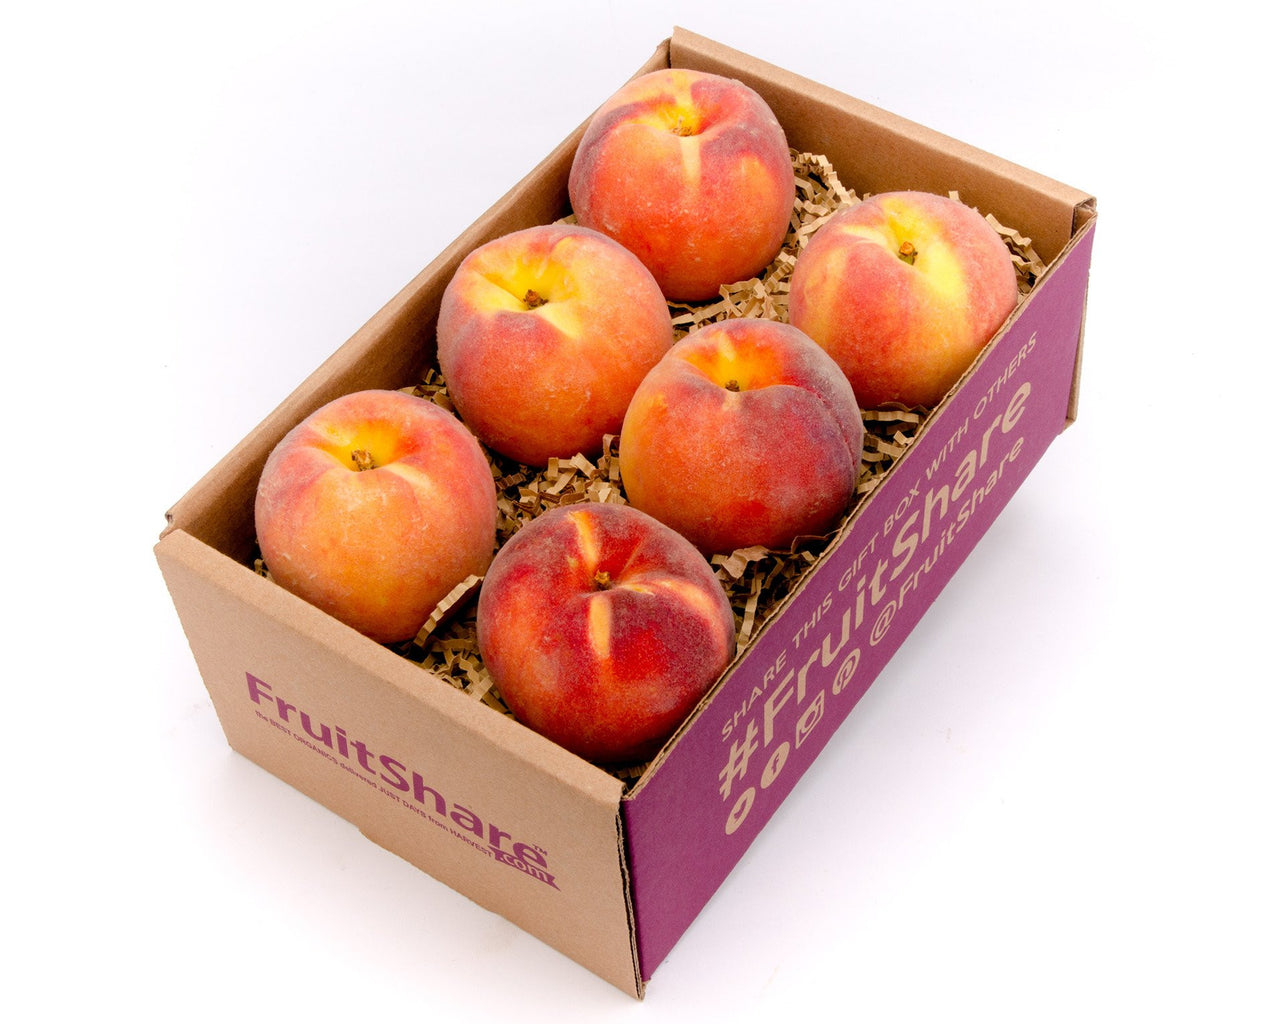 Peaches - Colorado- Organic- 6 piece fruit gift - FruitShare